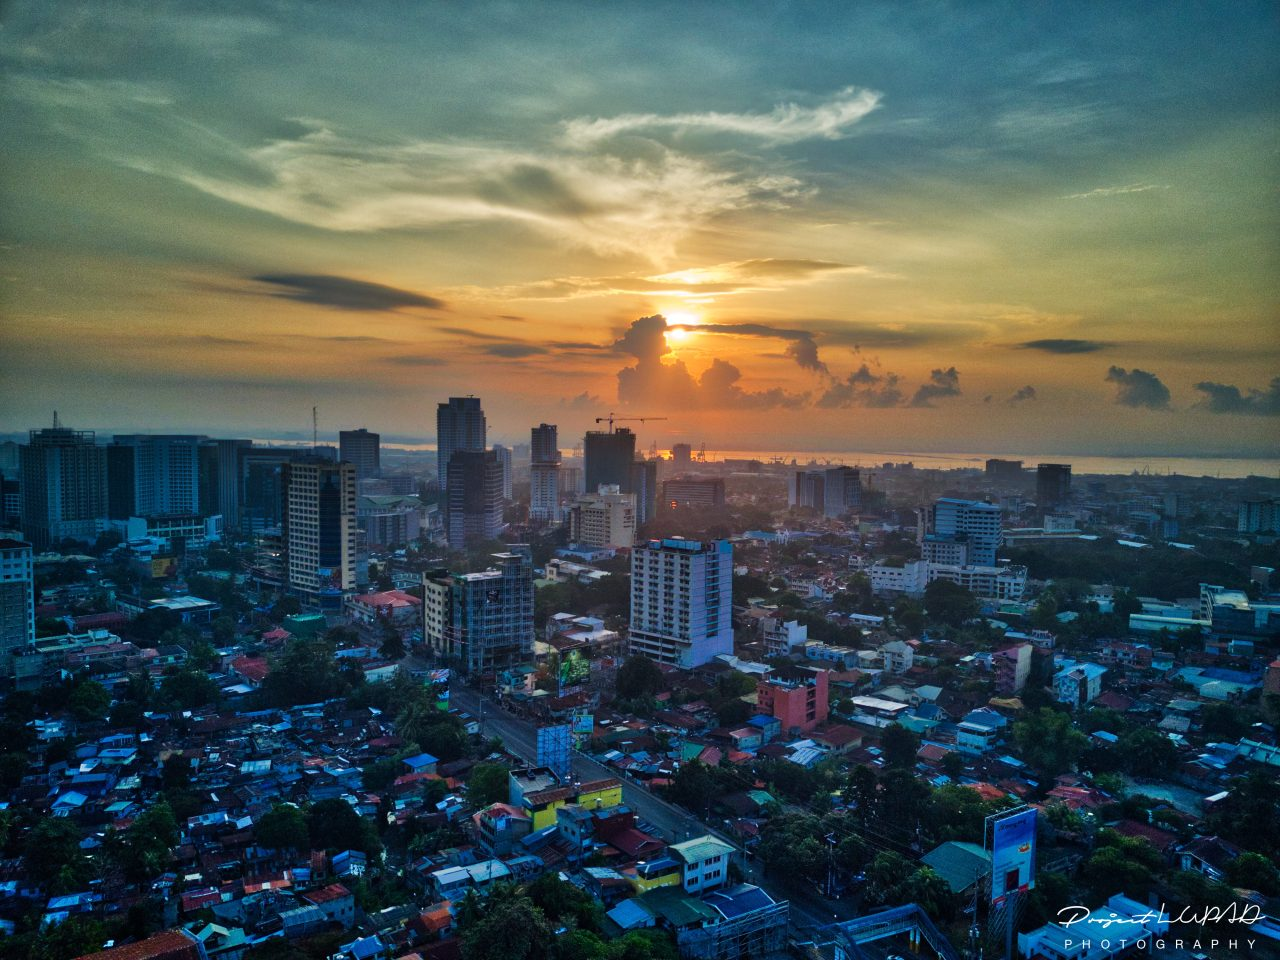 Spectacular Golden Hour Aerial View of Cebu City